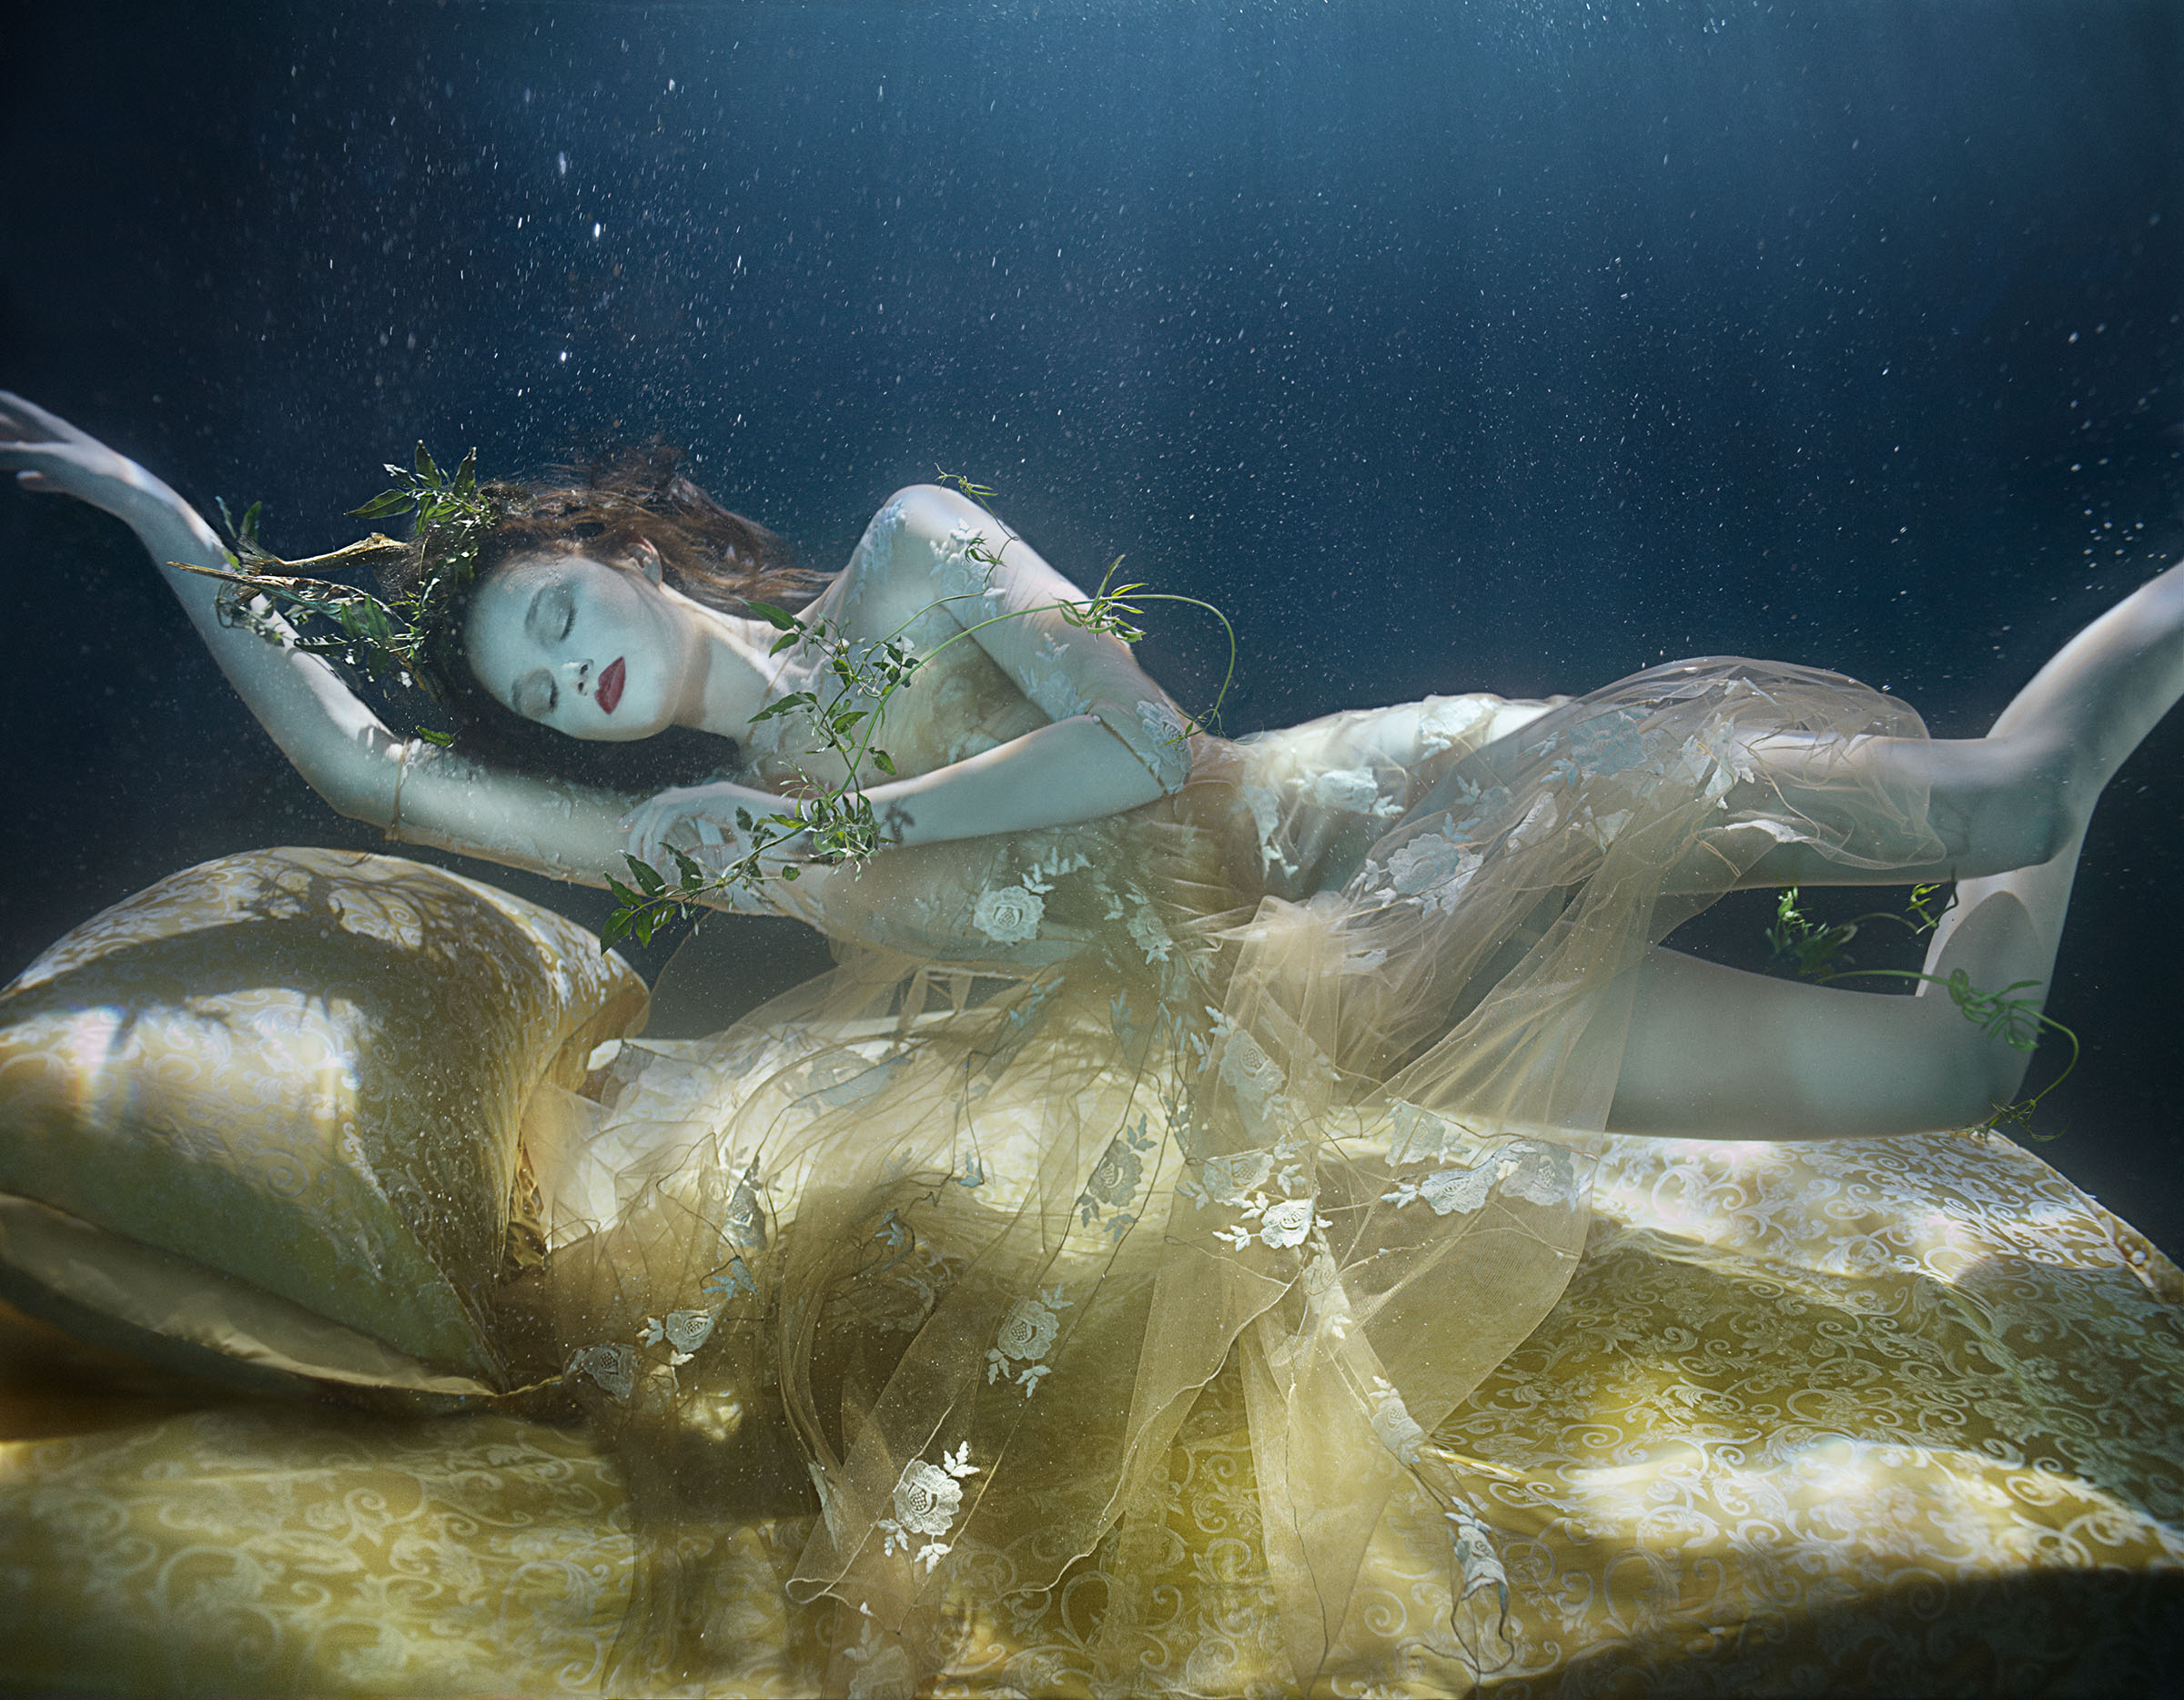 lydia-beesley-franziska-klein-by-zena-holloway-for-how-to-spend-it-may-2014